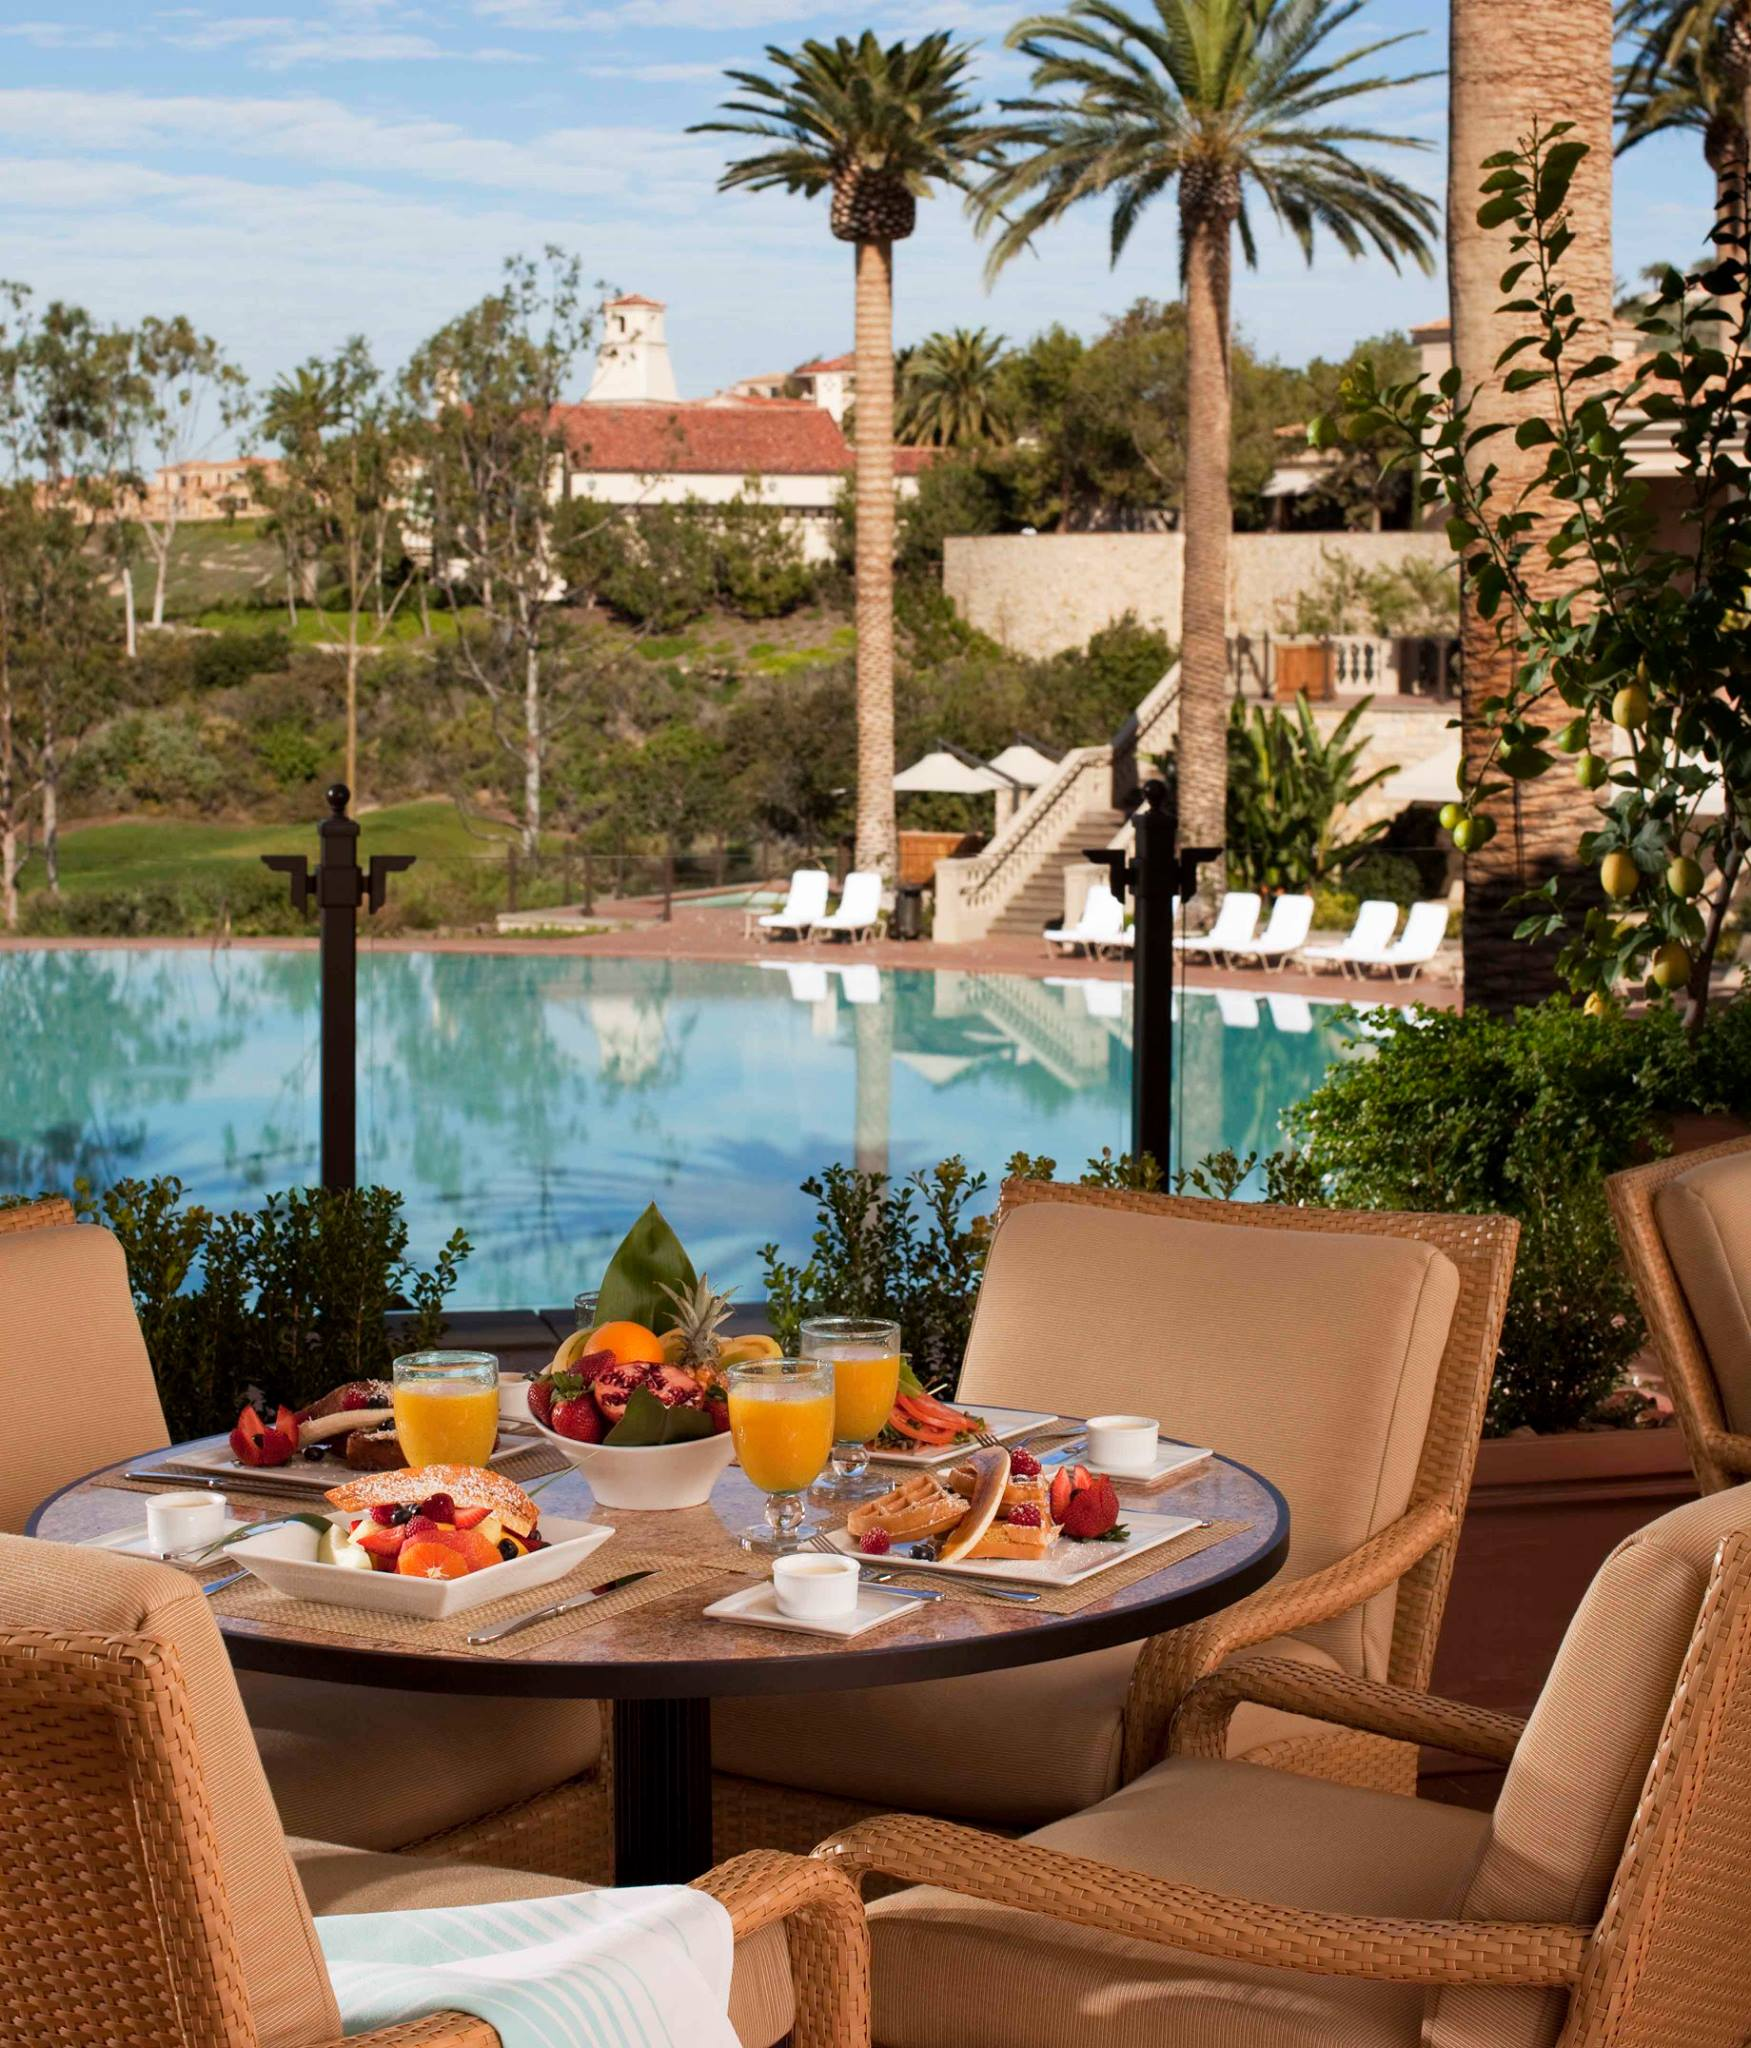 Enjoy a sunny weekend meal with the whole family | photo courtesy of Coliseum Pool & Grill